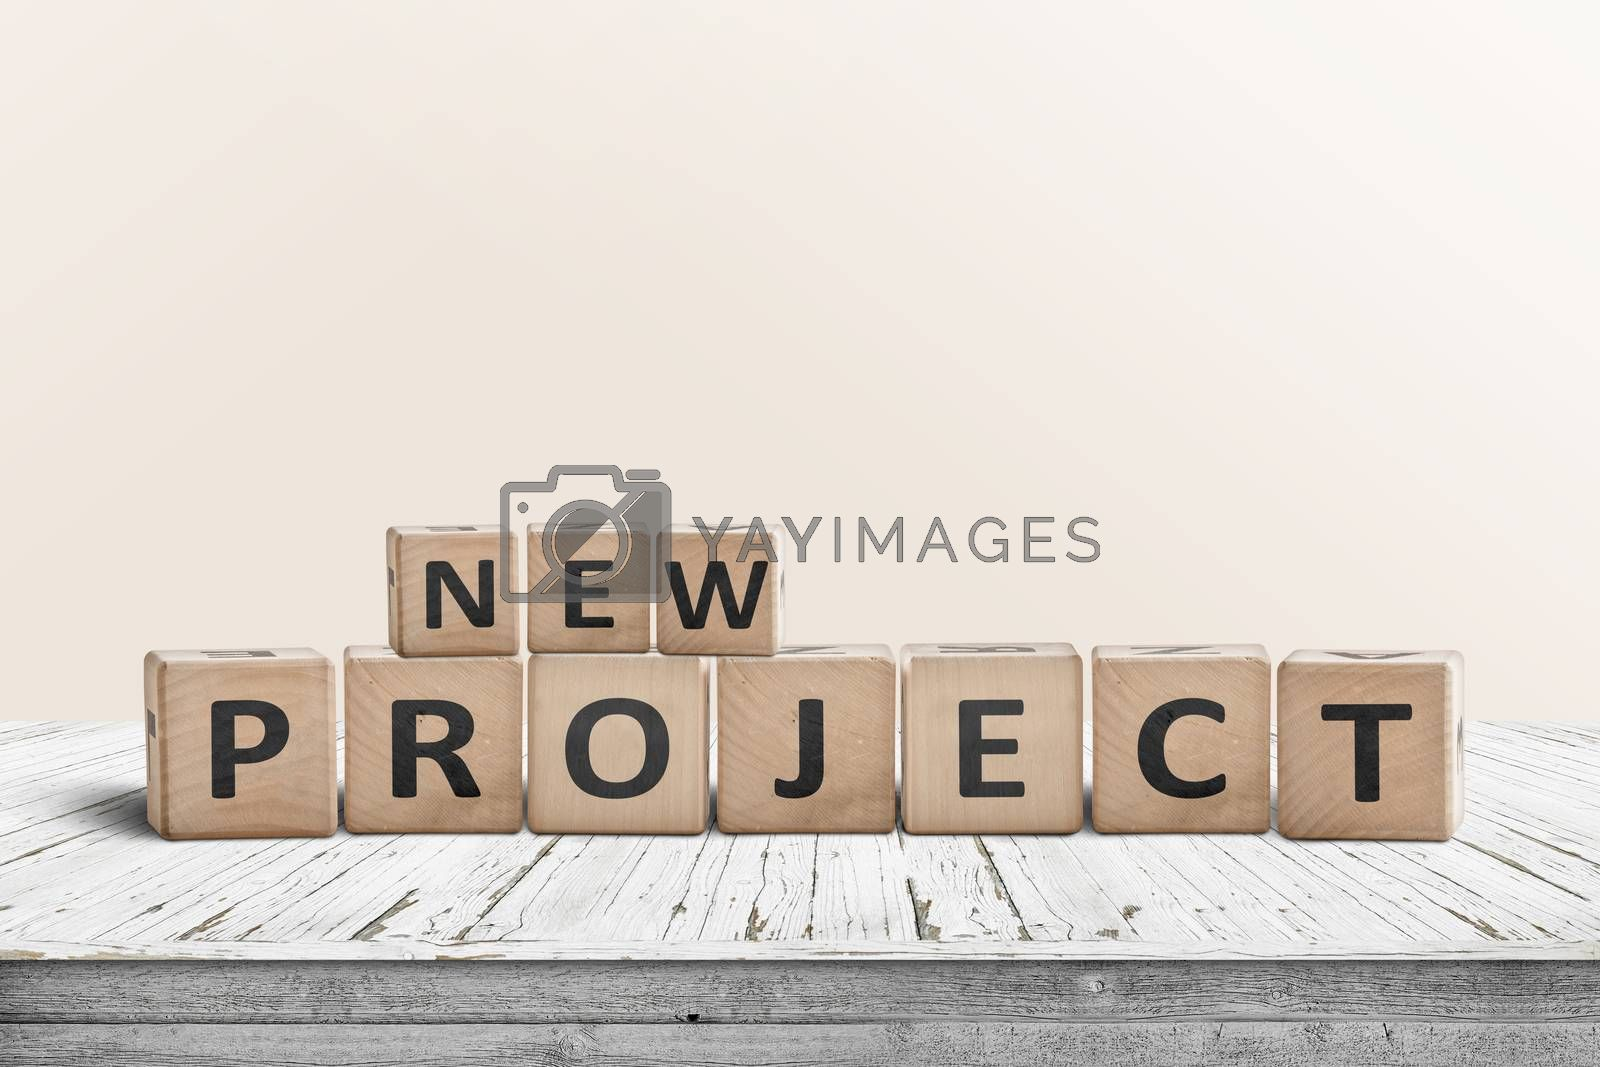 New project message on a wooden table in a bright room